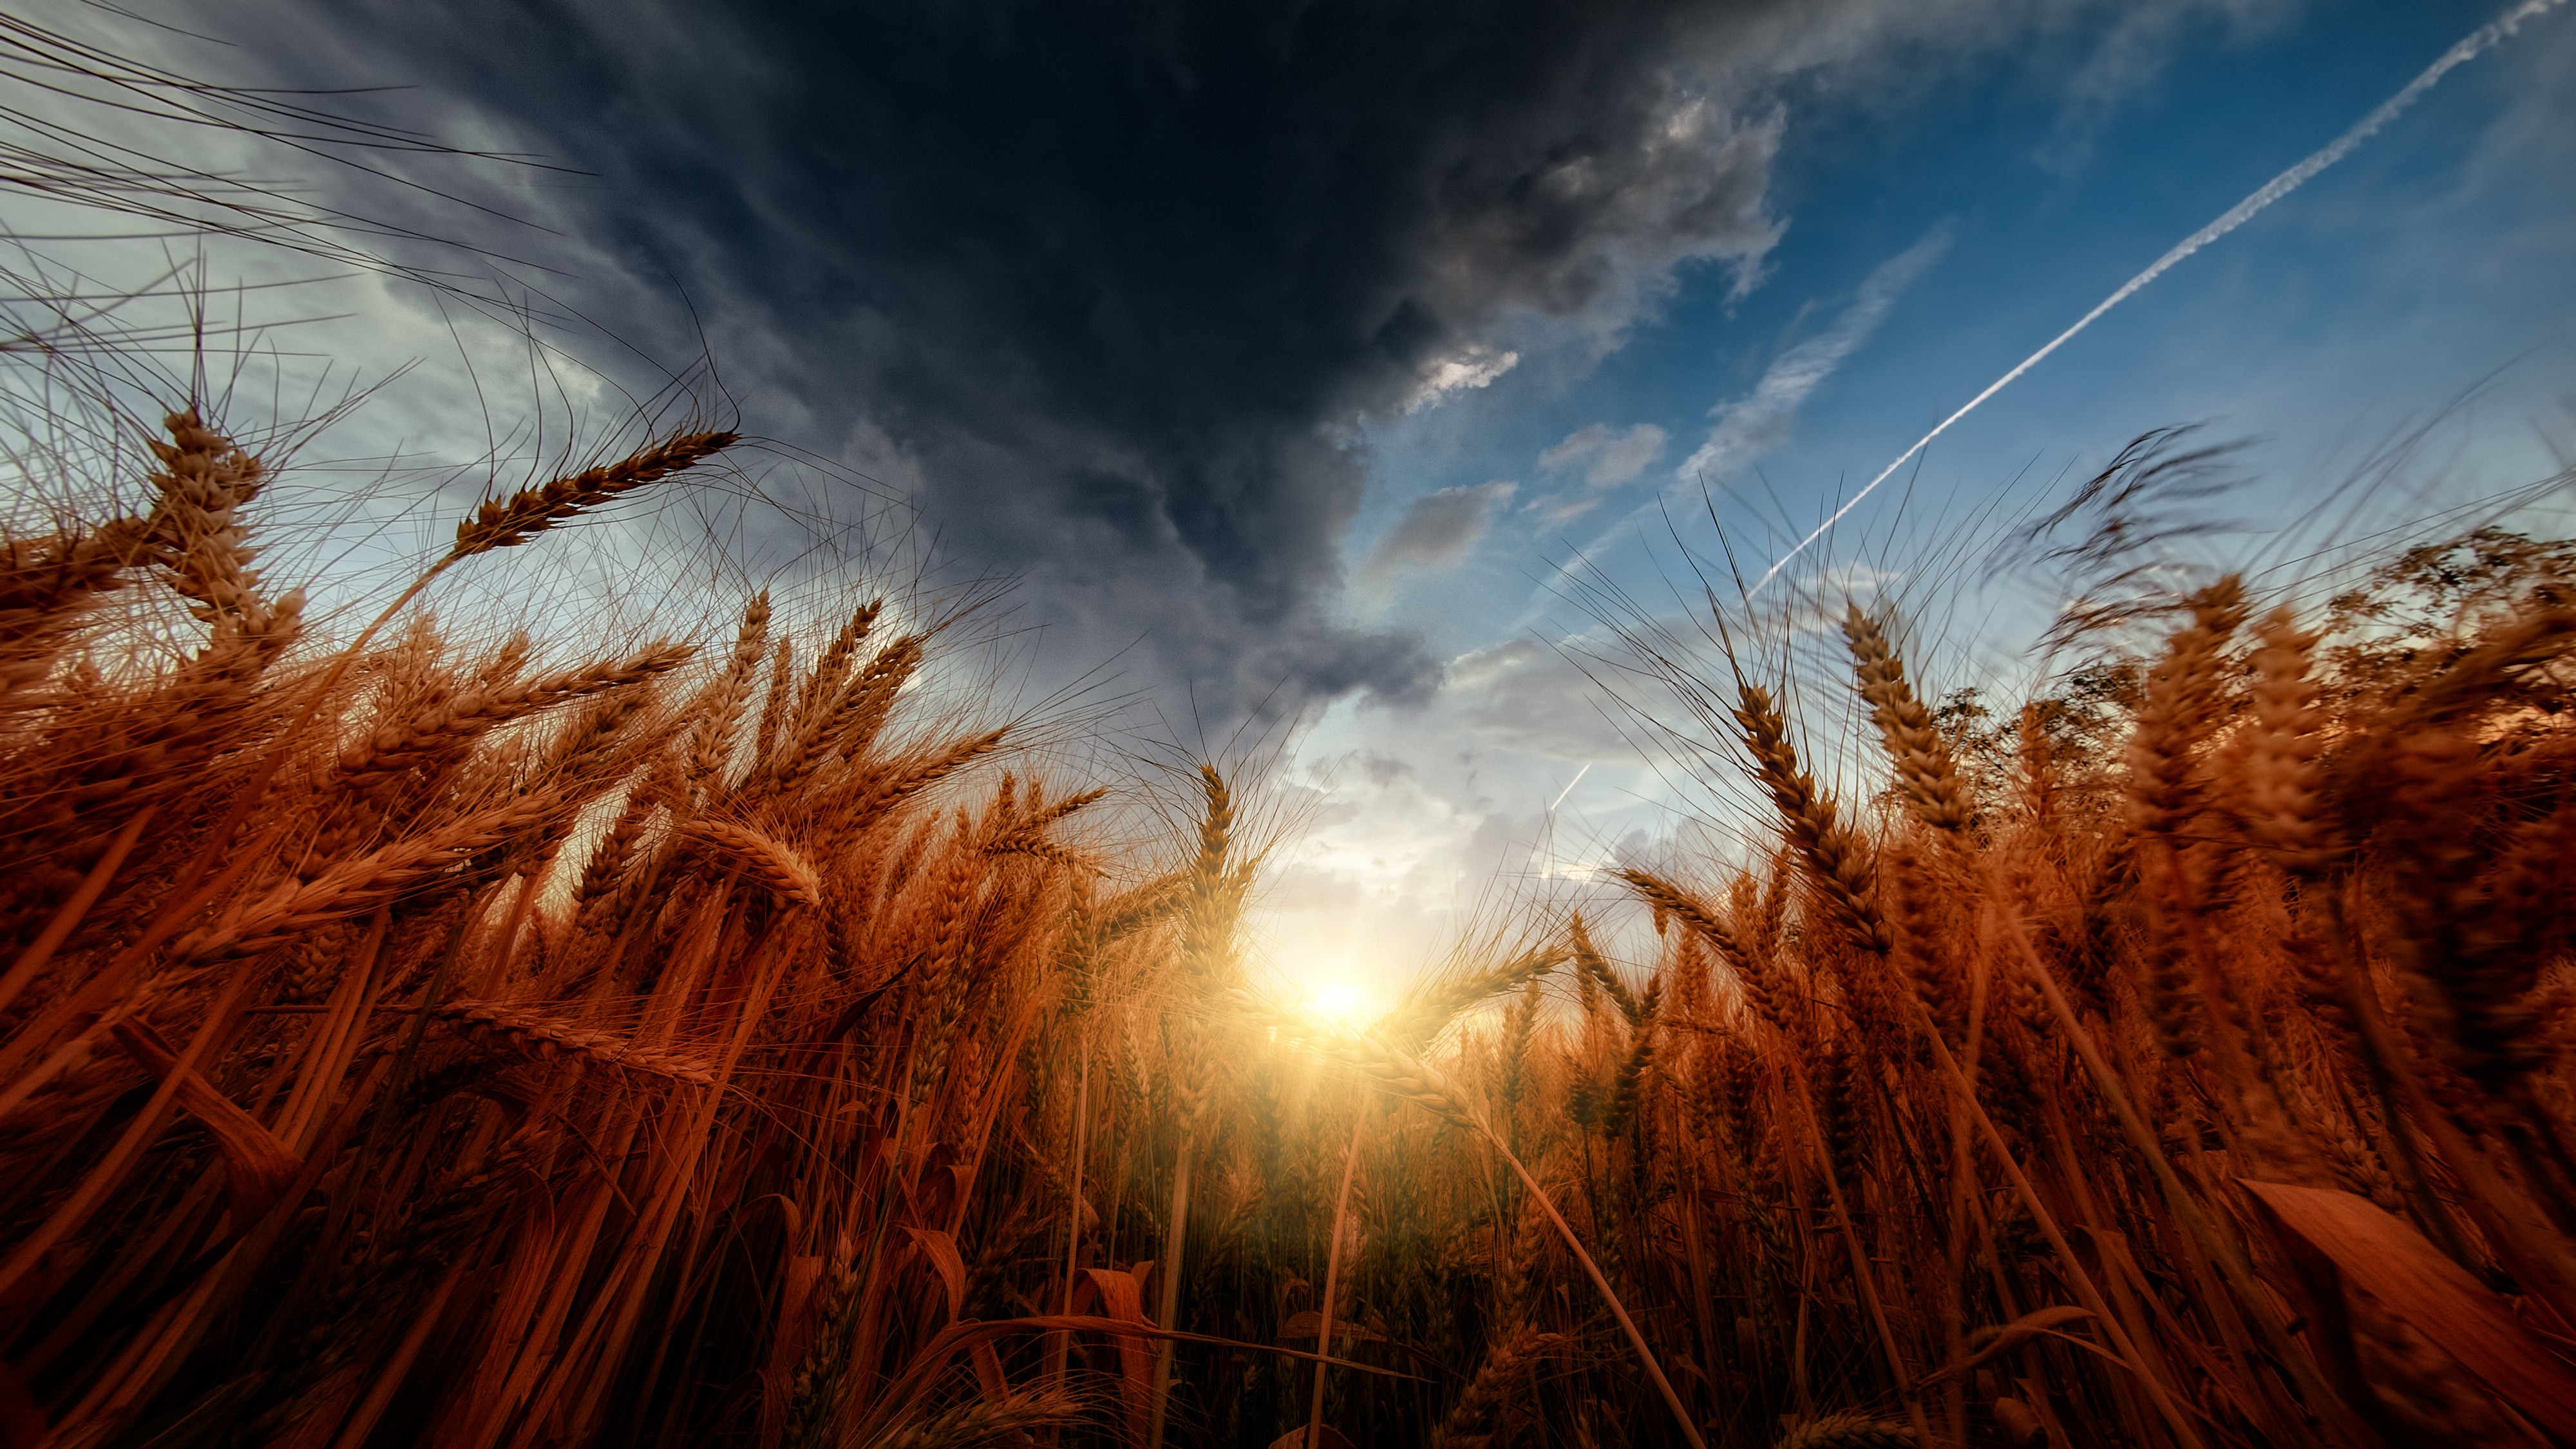 A sun shines over a wheat field through a darkened sky